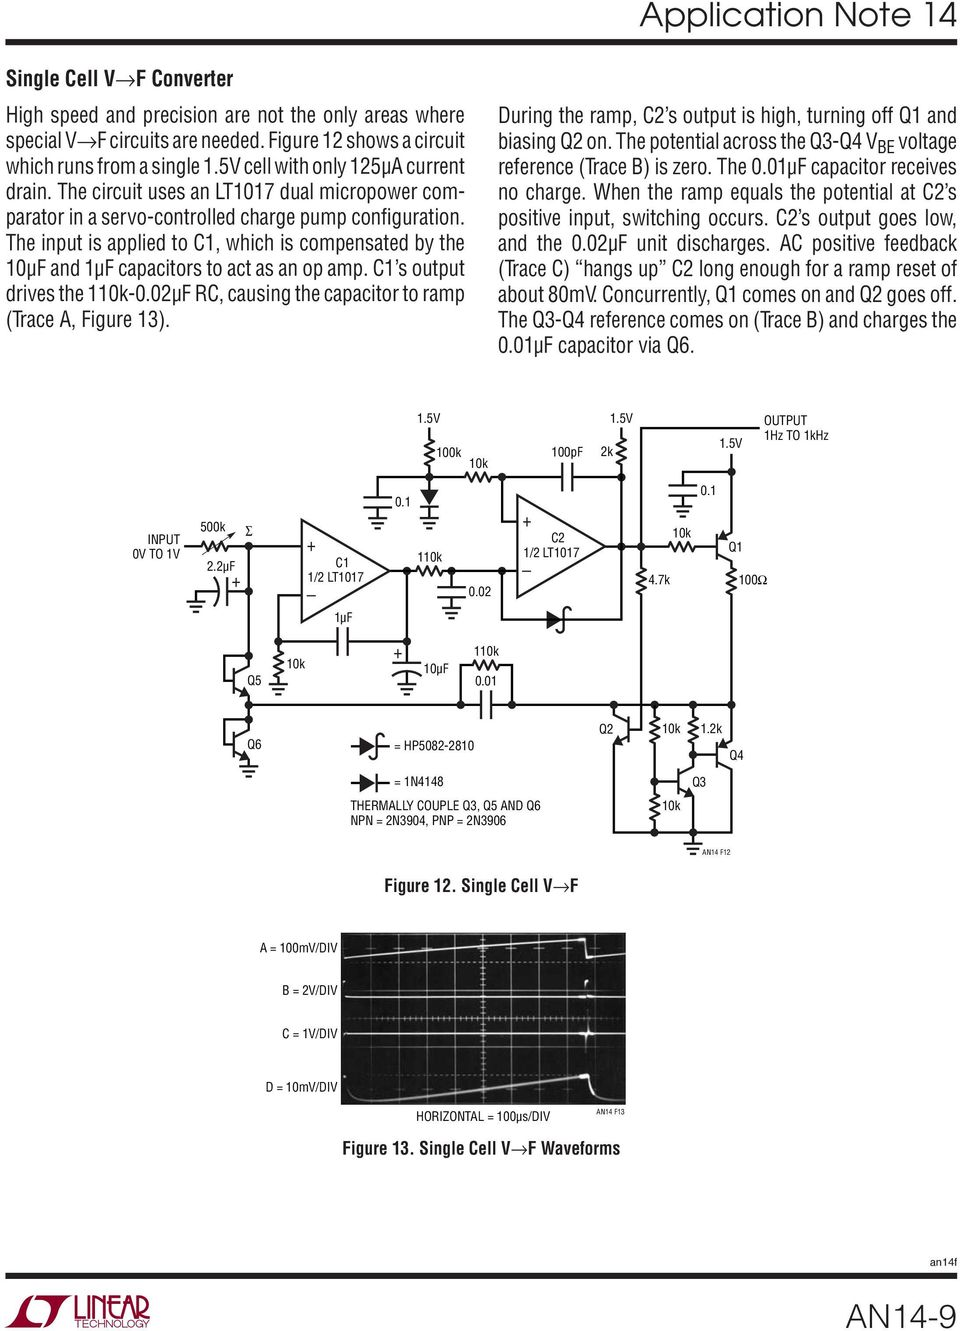 Designs For High Performance Voltage To Frequency Converters Pdf National Lm555 Datasheet Replacement Se555 Ne555 Series And The Connection Diagram C S Output Drives 002f Rc Causing Capacitor Ramp Trace